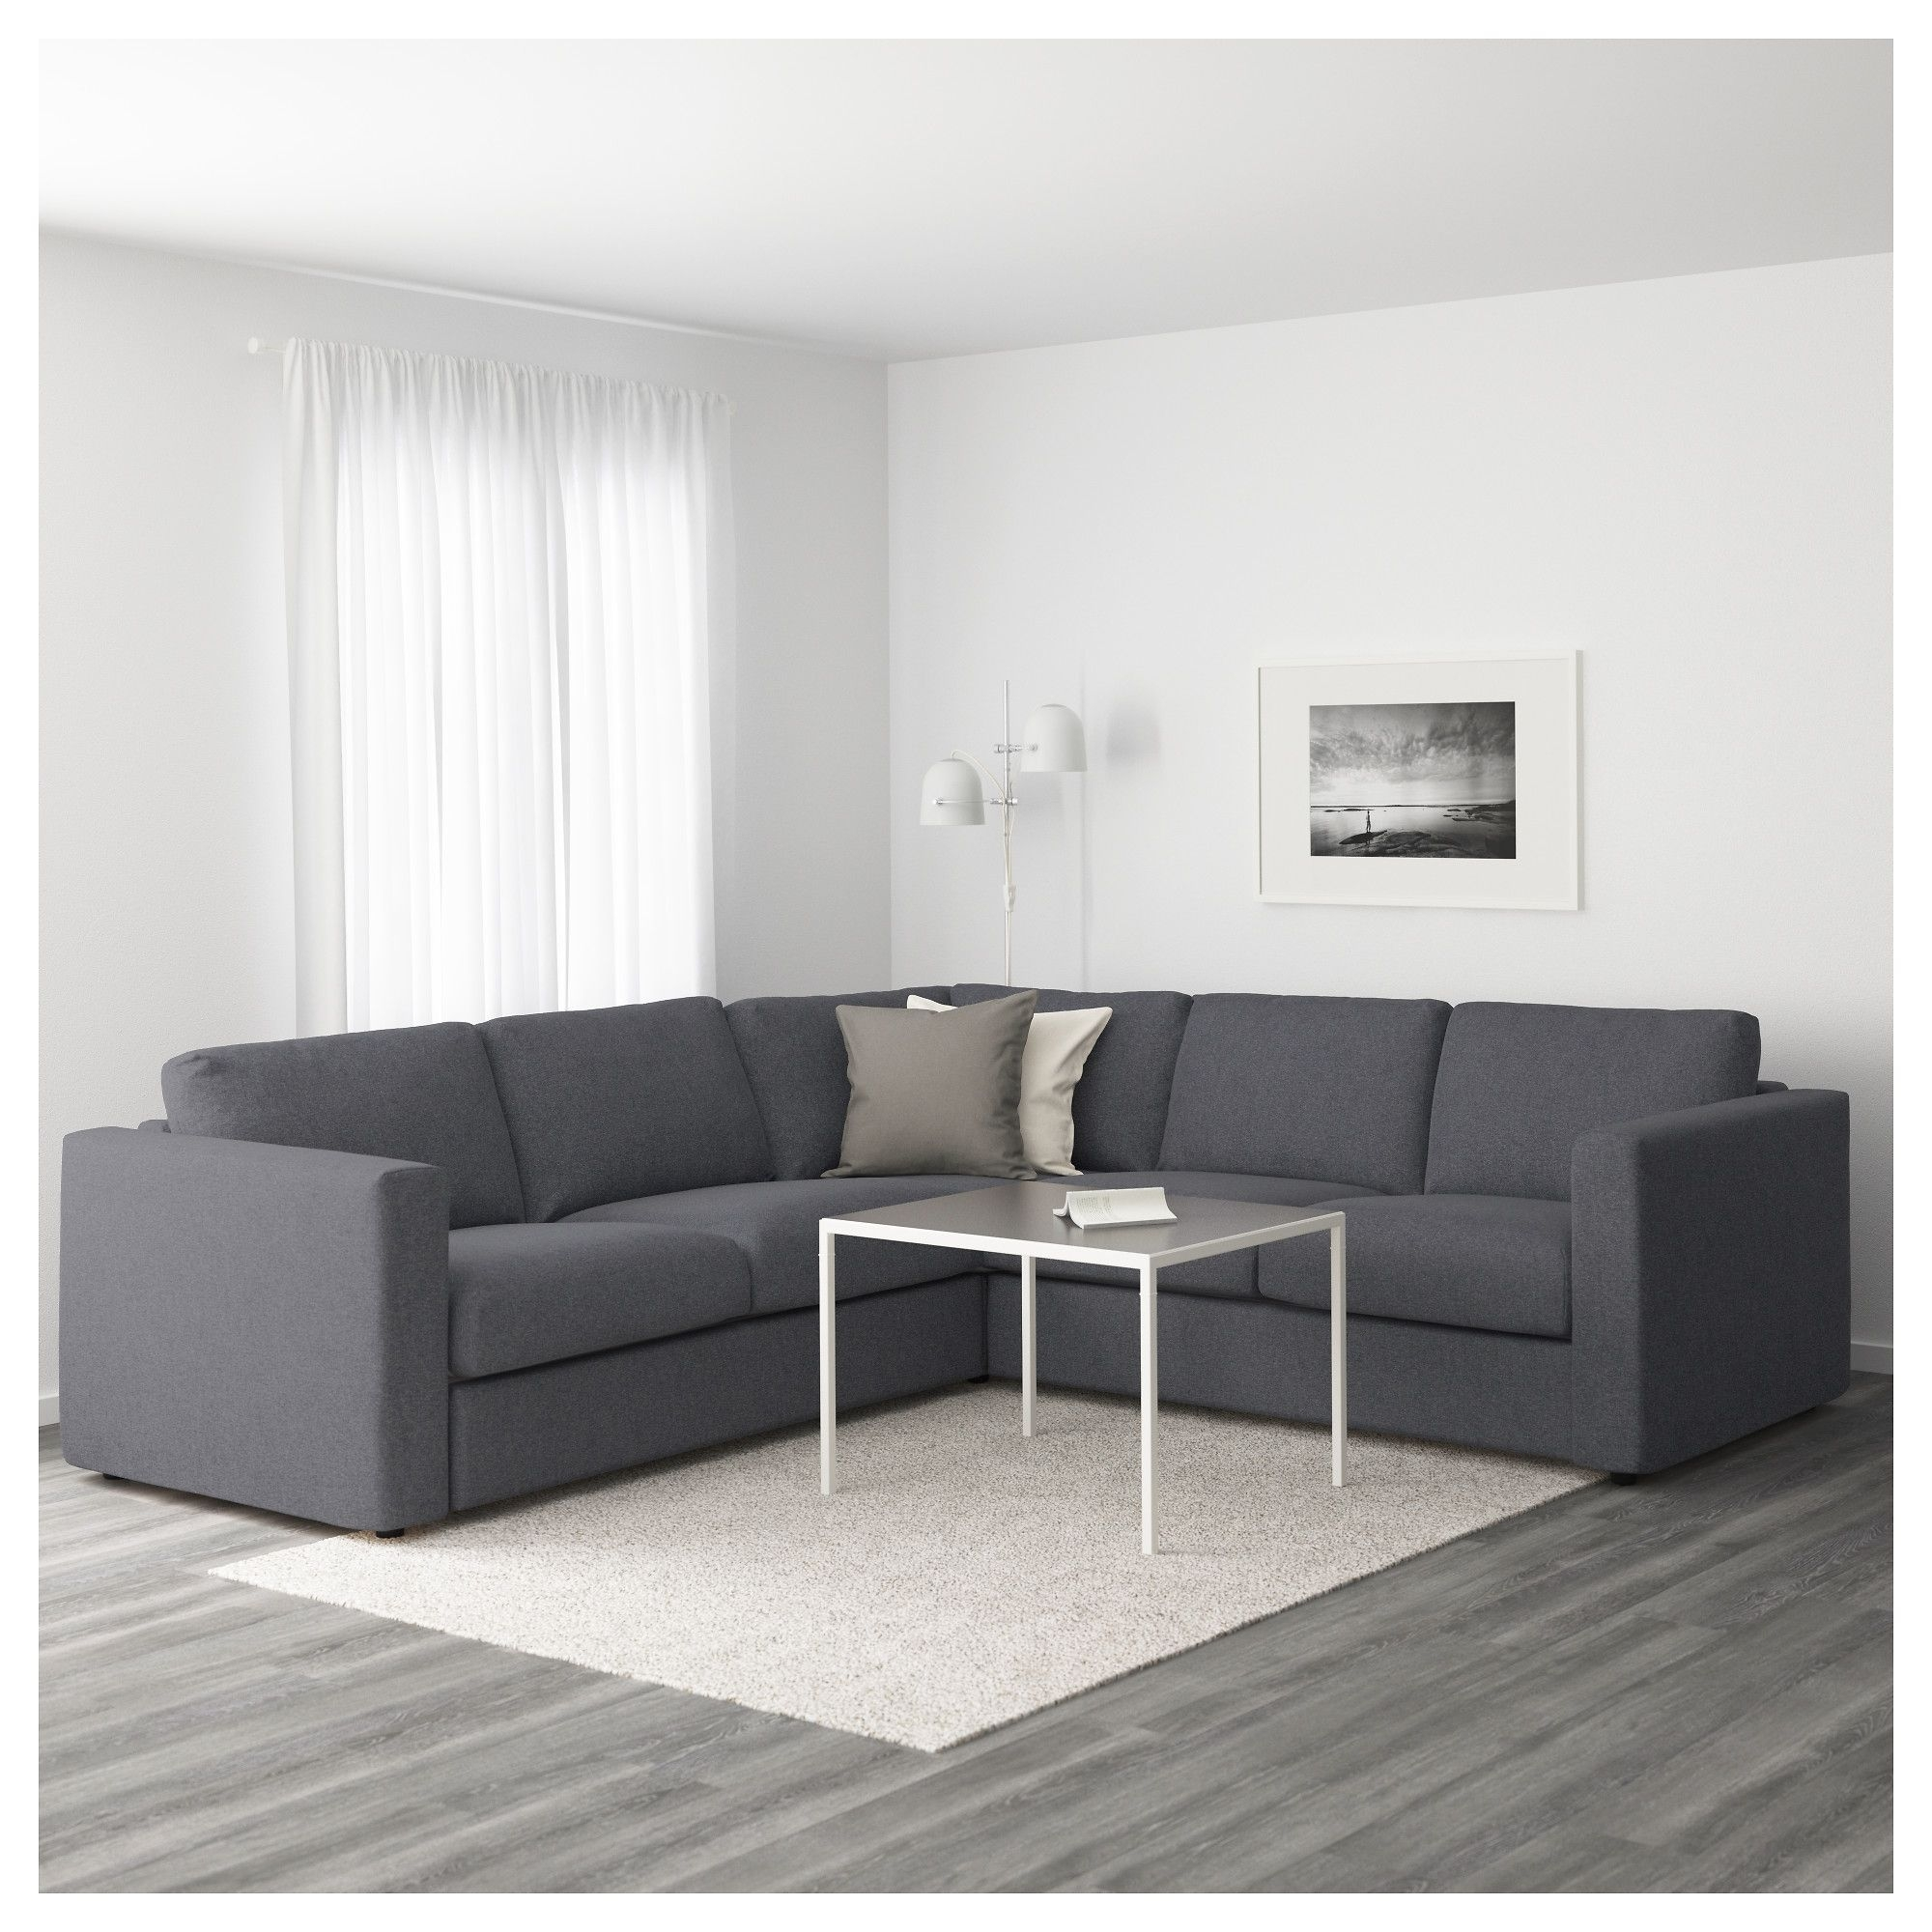 Pikby Social Media Analytics & Statistics Tools Throughout Marius Dark Grey 3 Piece Sectionals (Image 23 of 25)